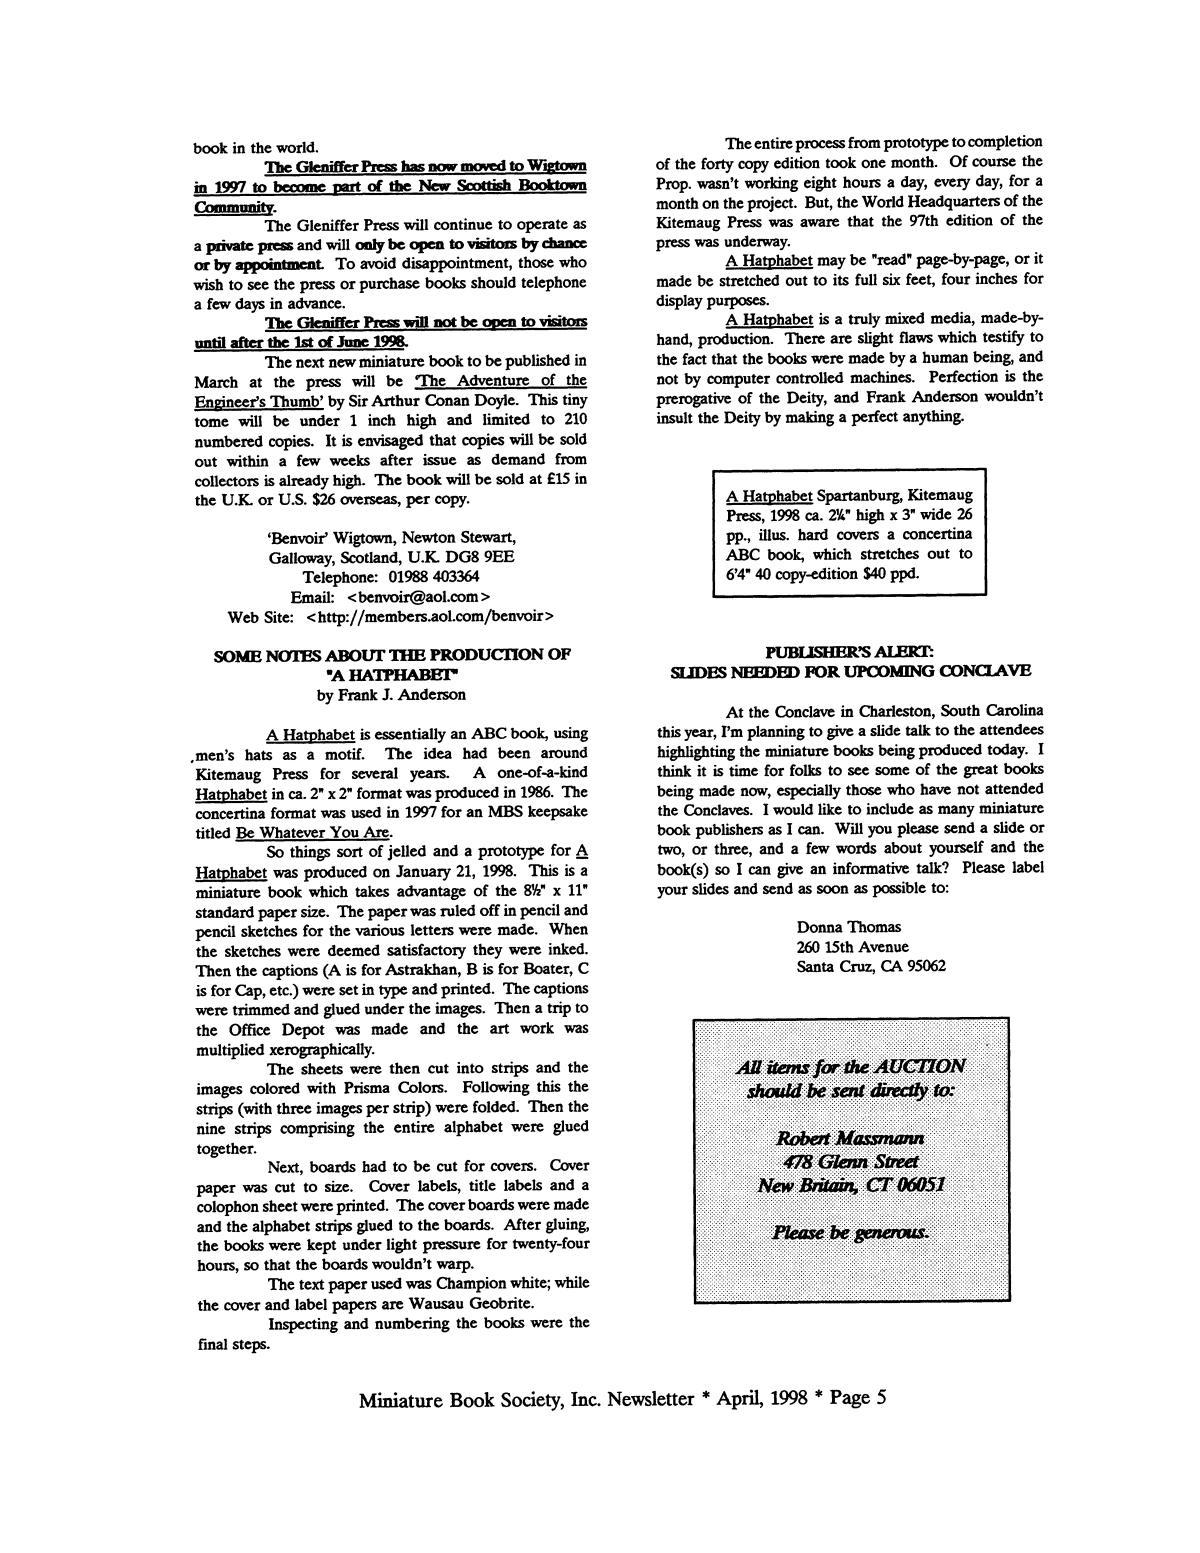 Miniature Book Society Newsletter 1998 April                                                                                                      5